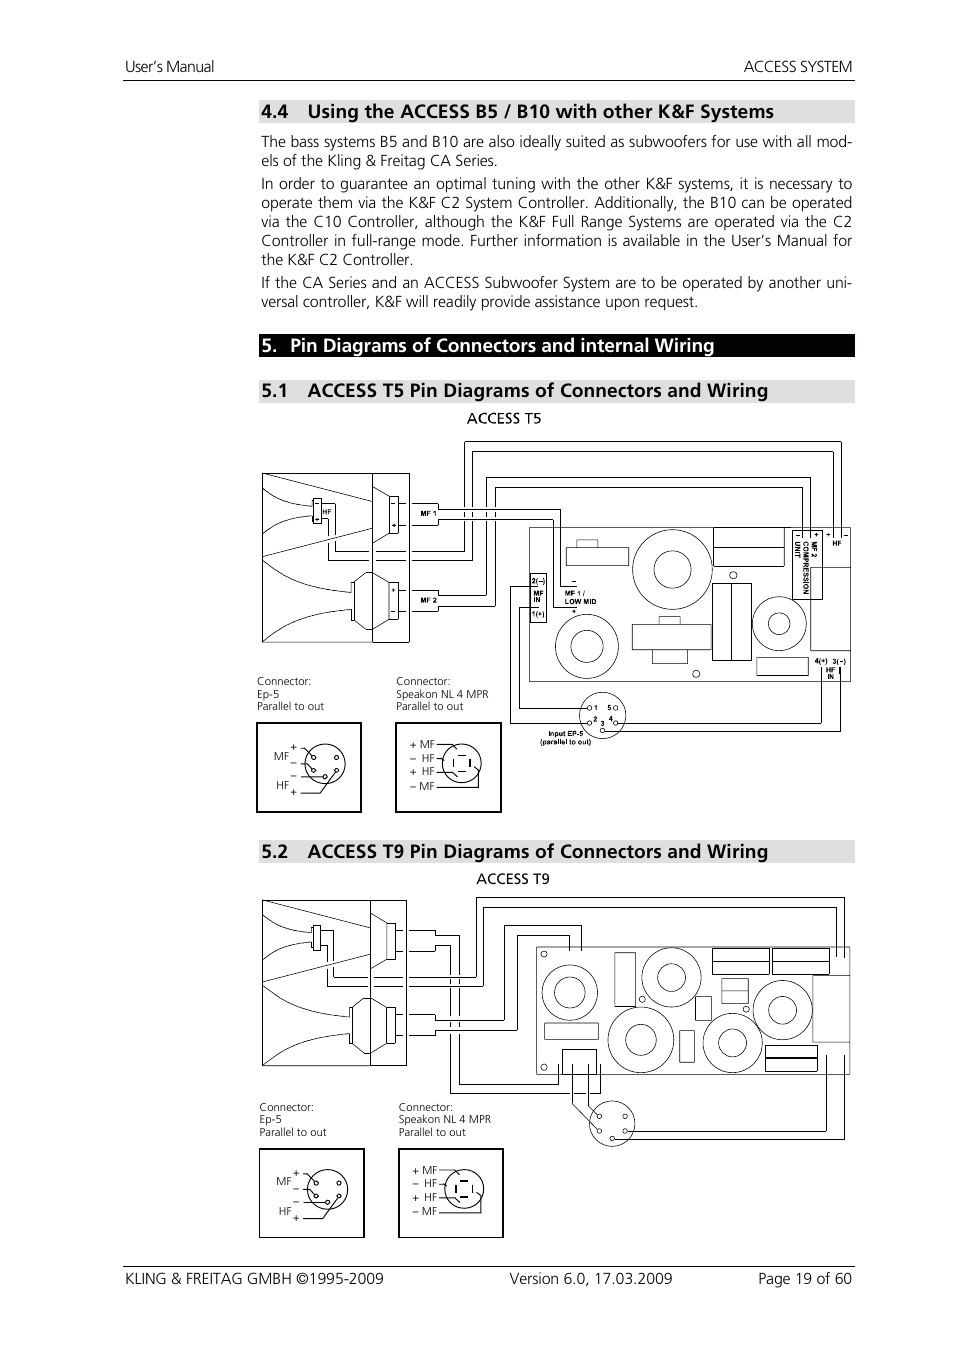 kling freitag kf access t9 page19 4 using the access b5 b10 with other k&f systems, 5 pin diagrams